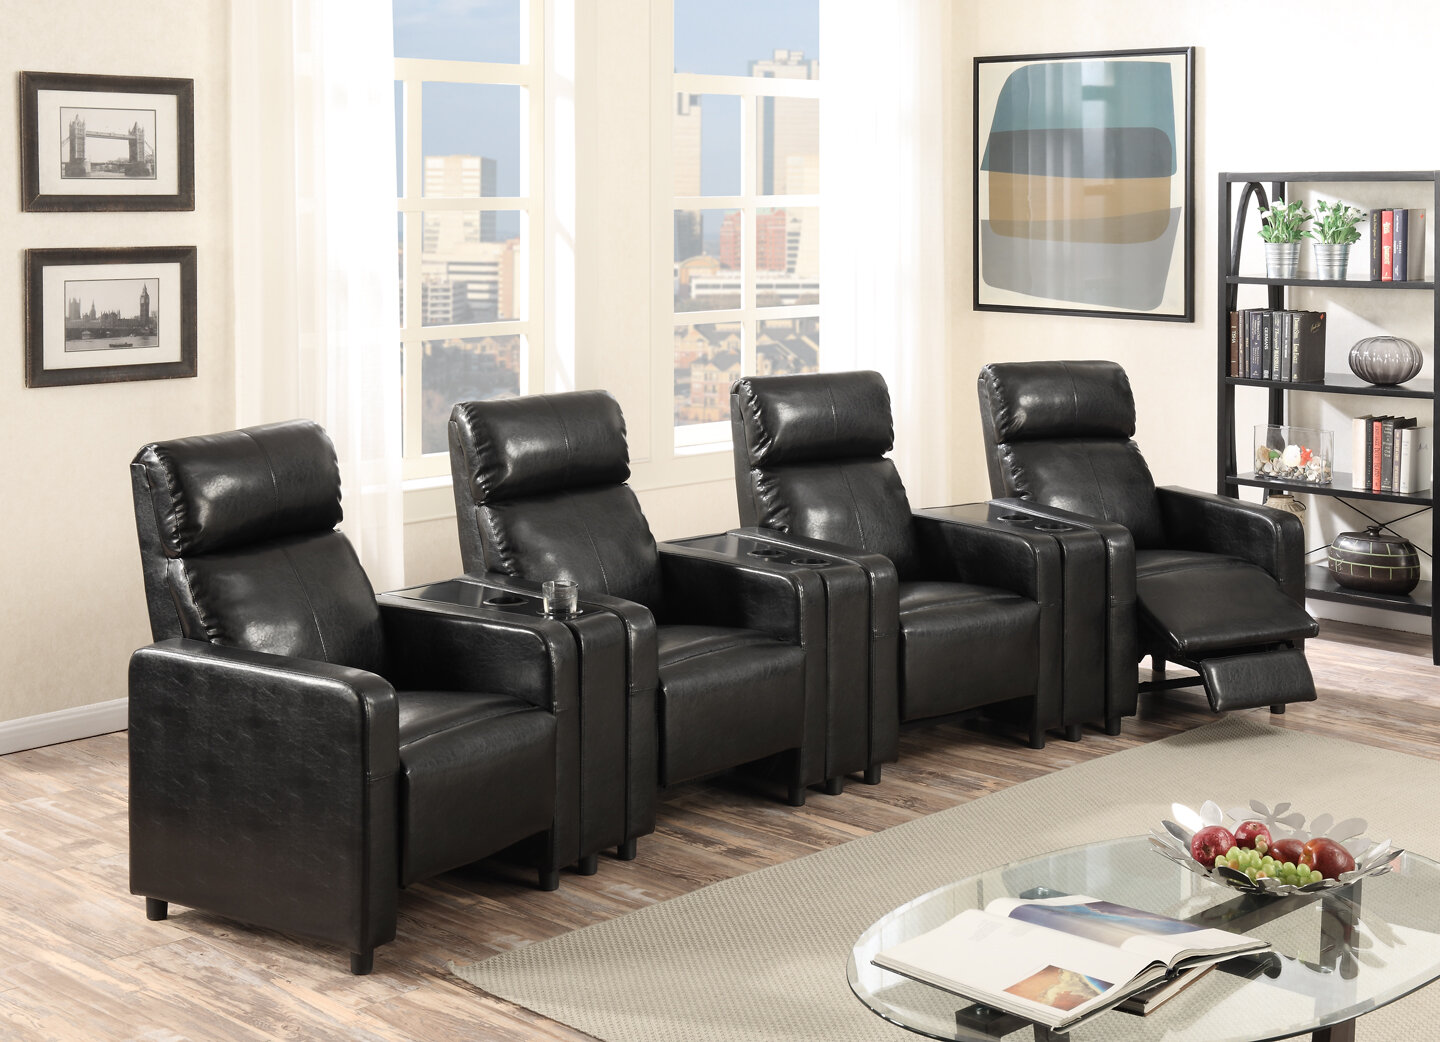 Ketter Home Theater Row Seating (Row of 4)